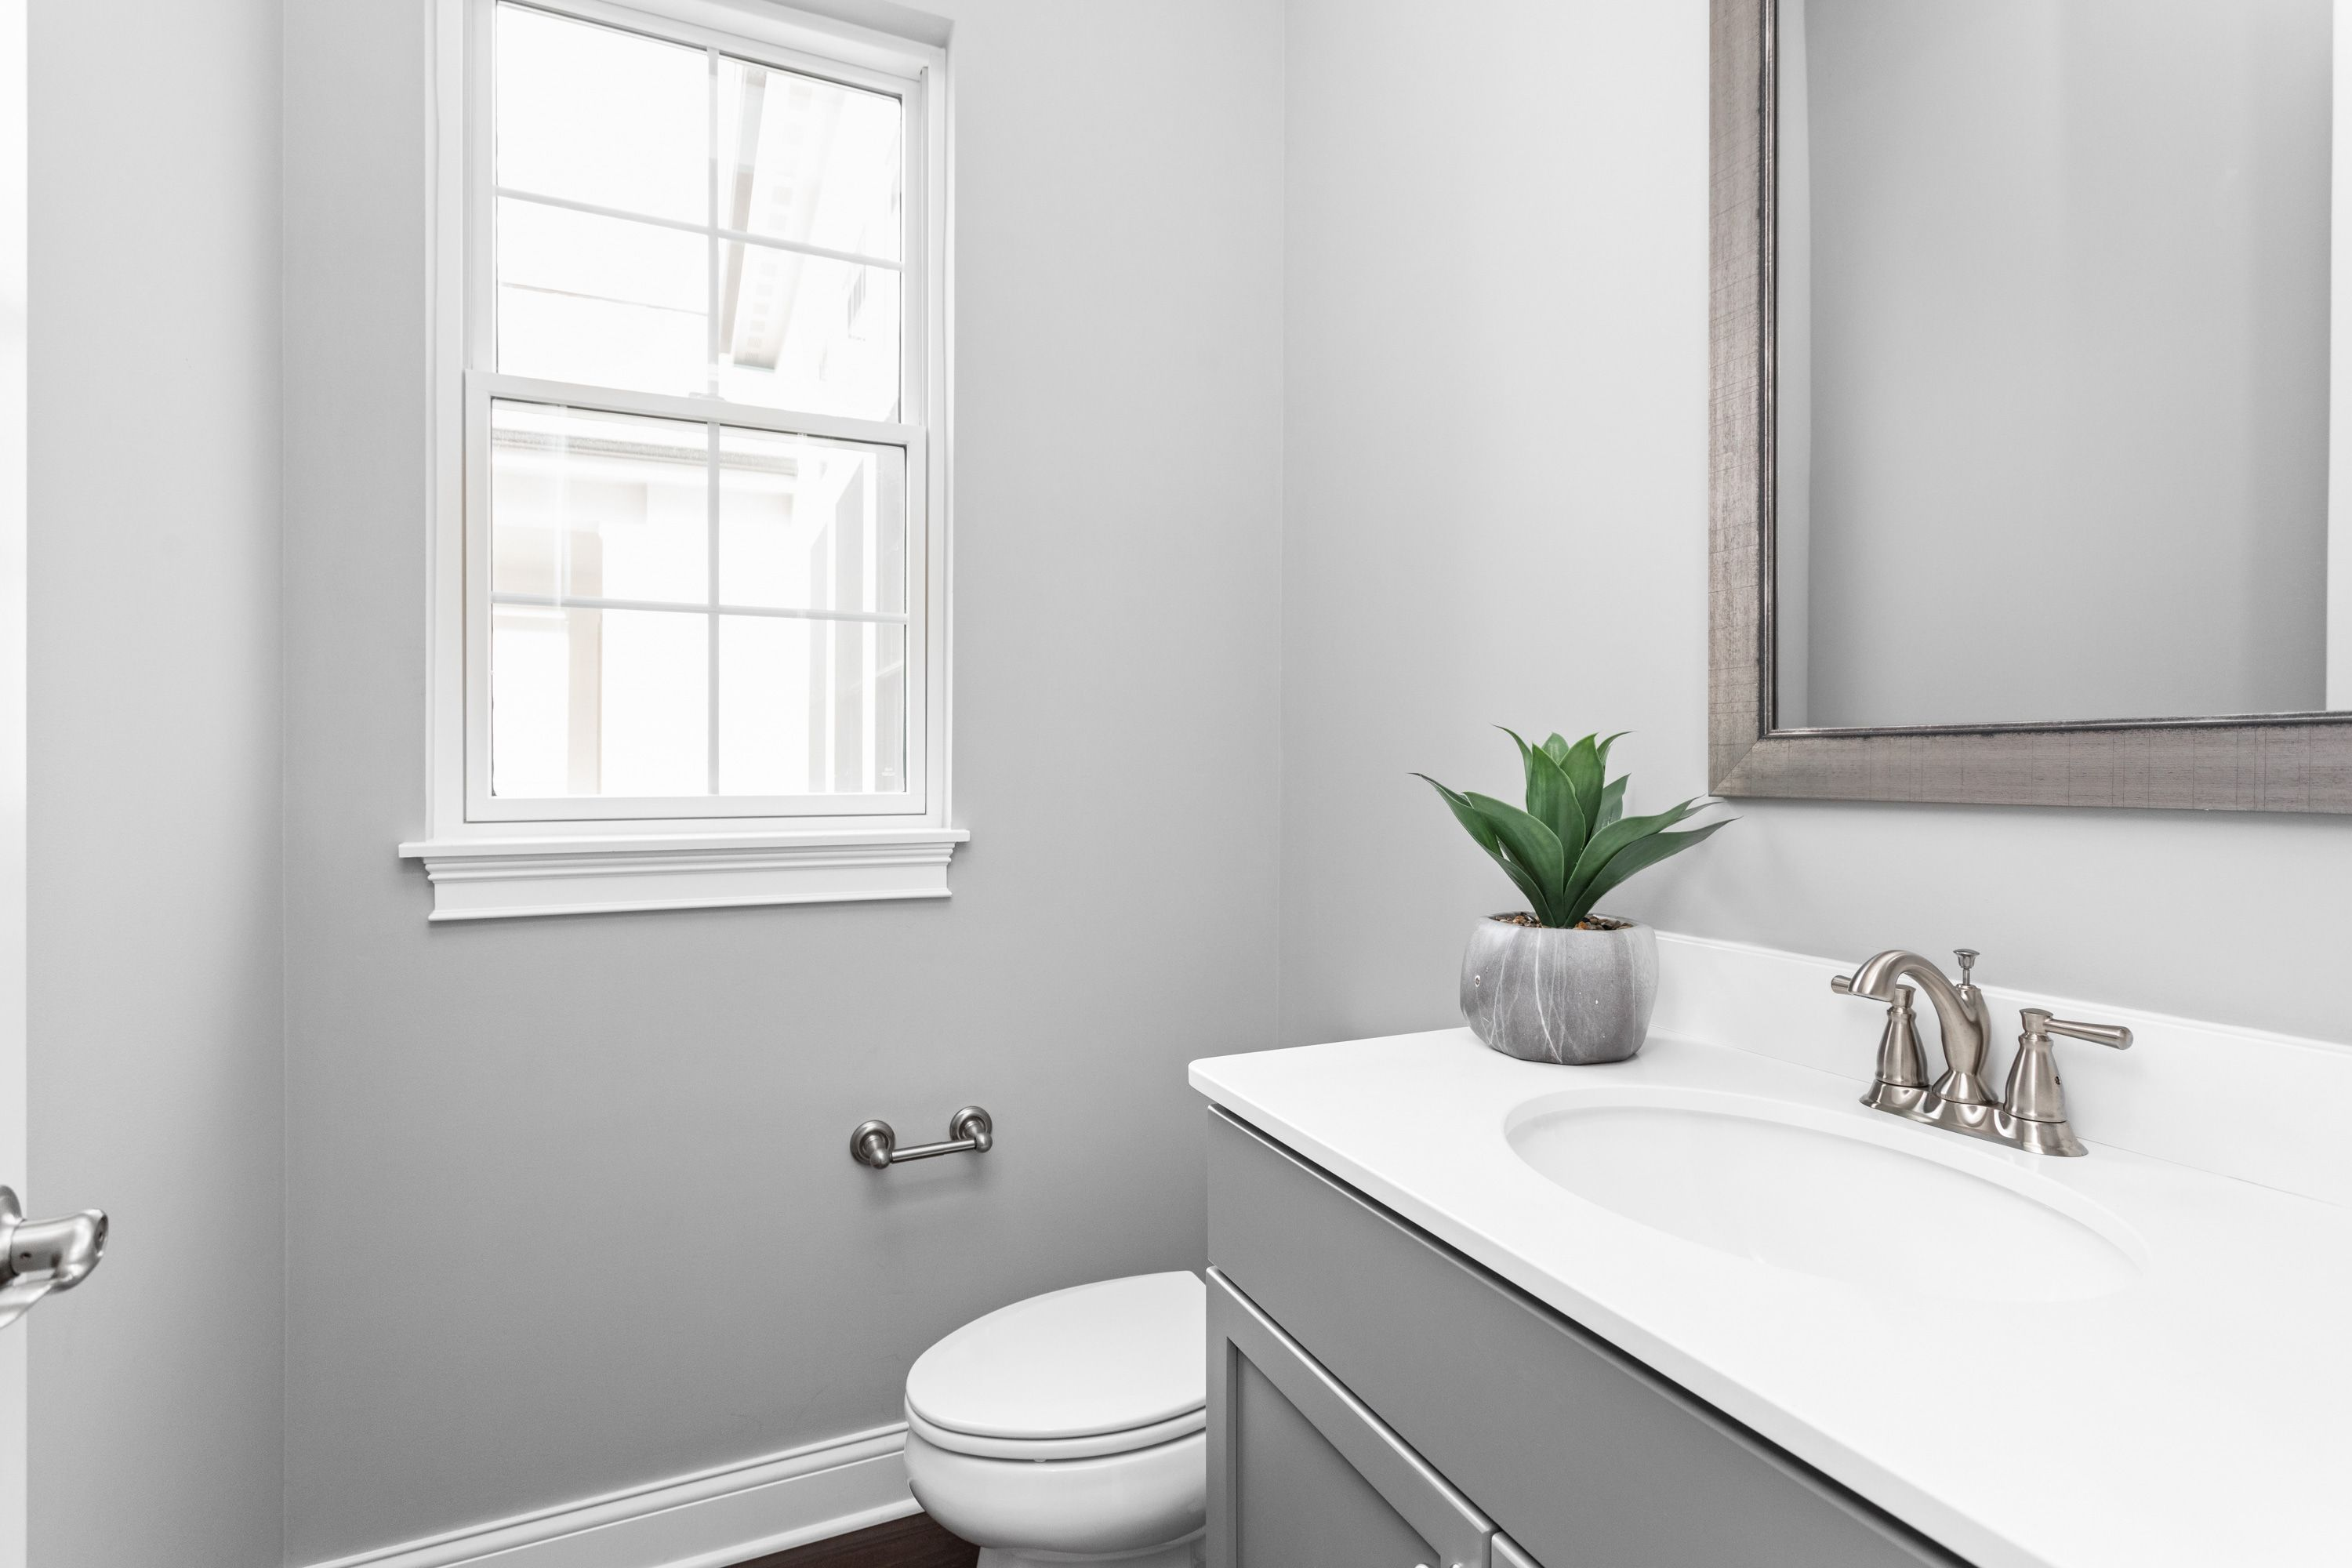 Bathroom featured in the Lockerbie 323 By Estridge Homes in Indianapolis, IN